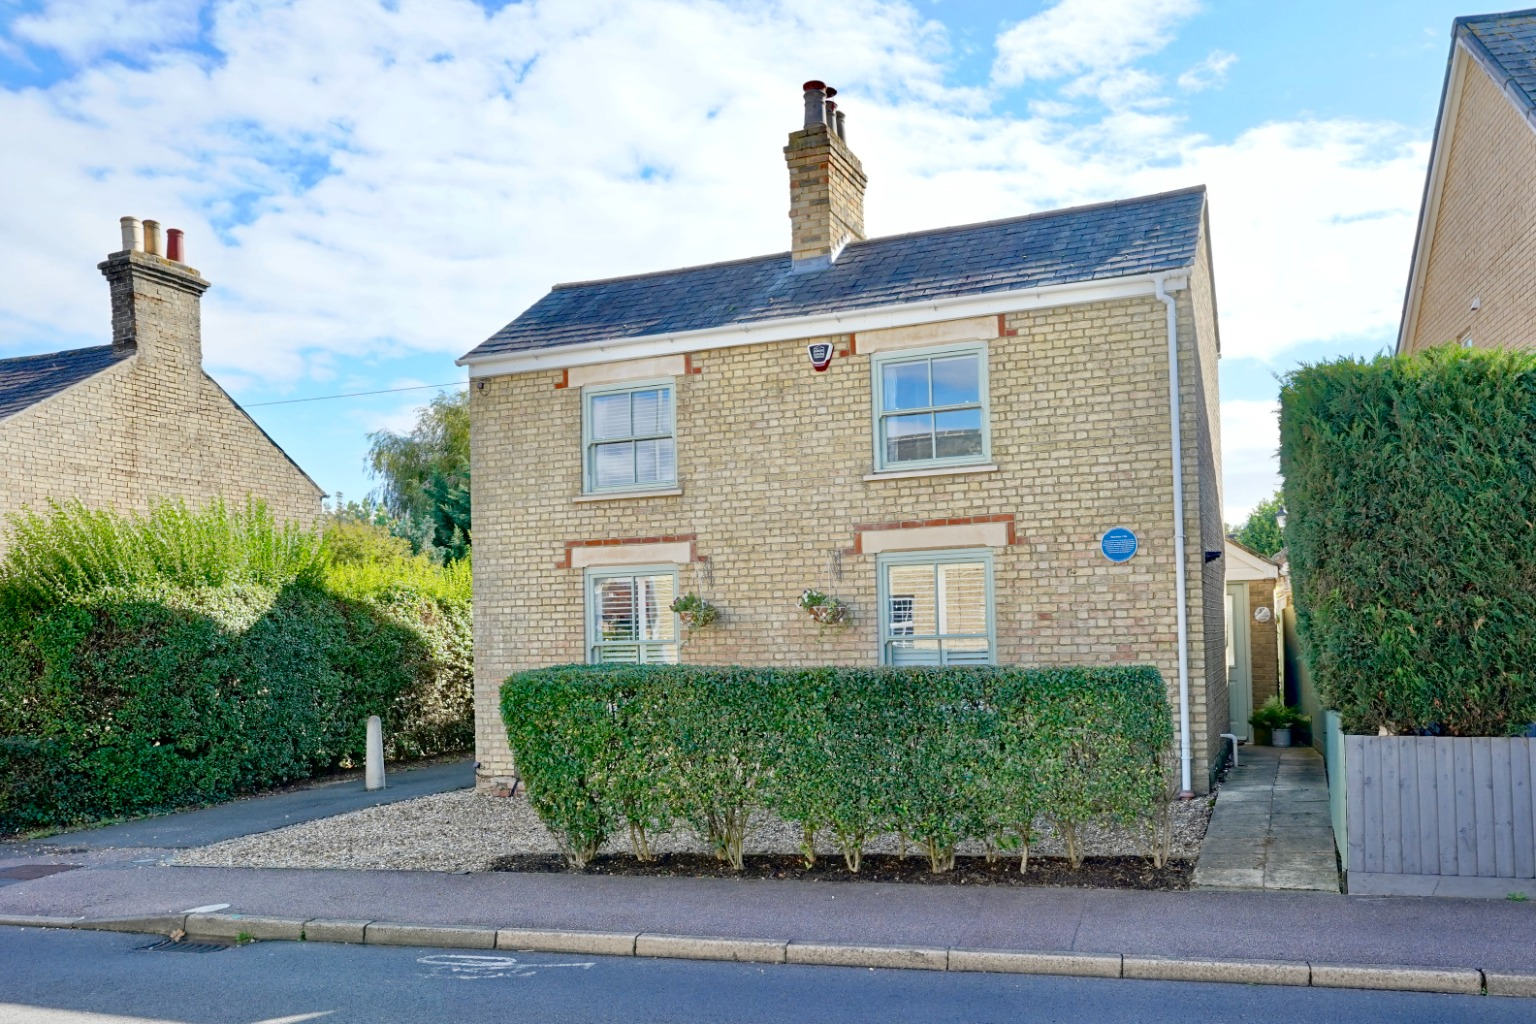 4 bed detached house for sale in St. Neots Road, St. Neots  - Property Image 1